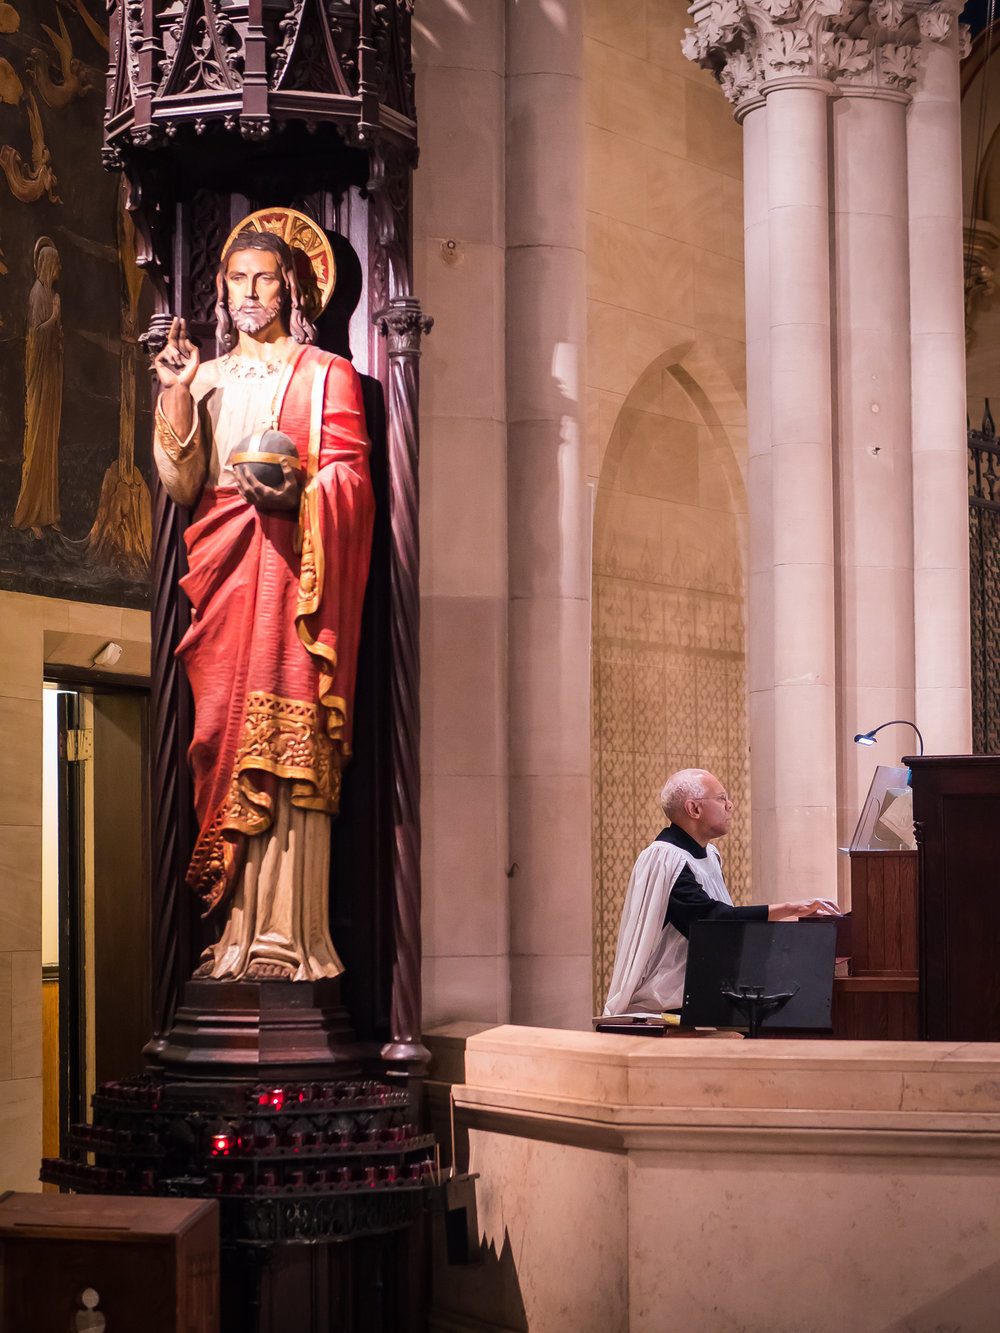 Dr. Hurd plays a prelude before Solemn Mass begins.  Photo by Ricardo Gomez